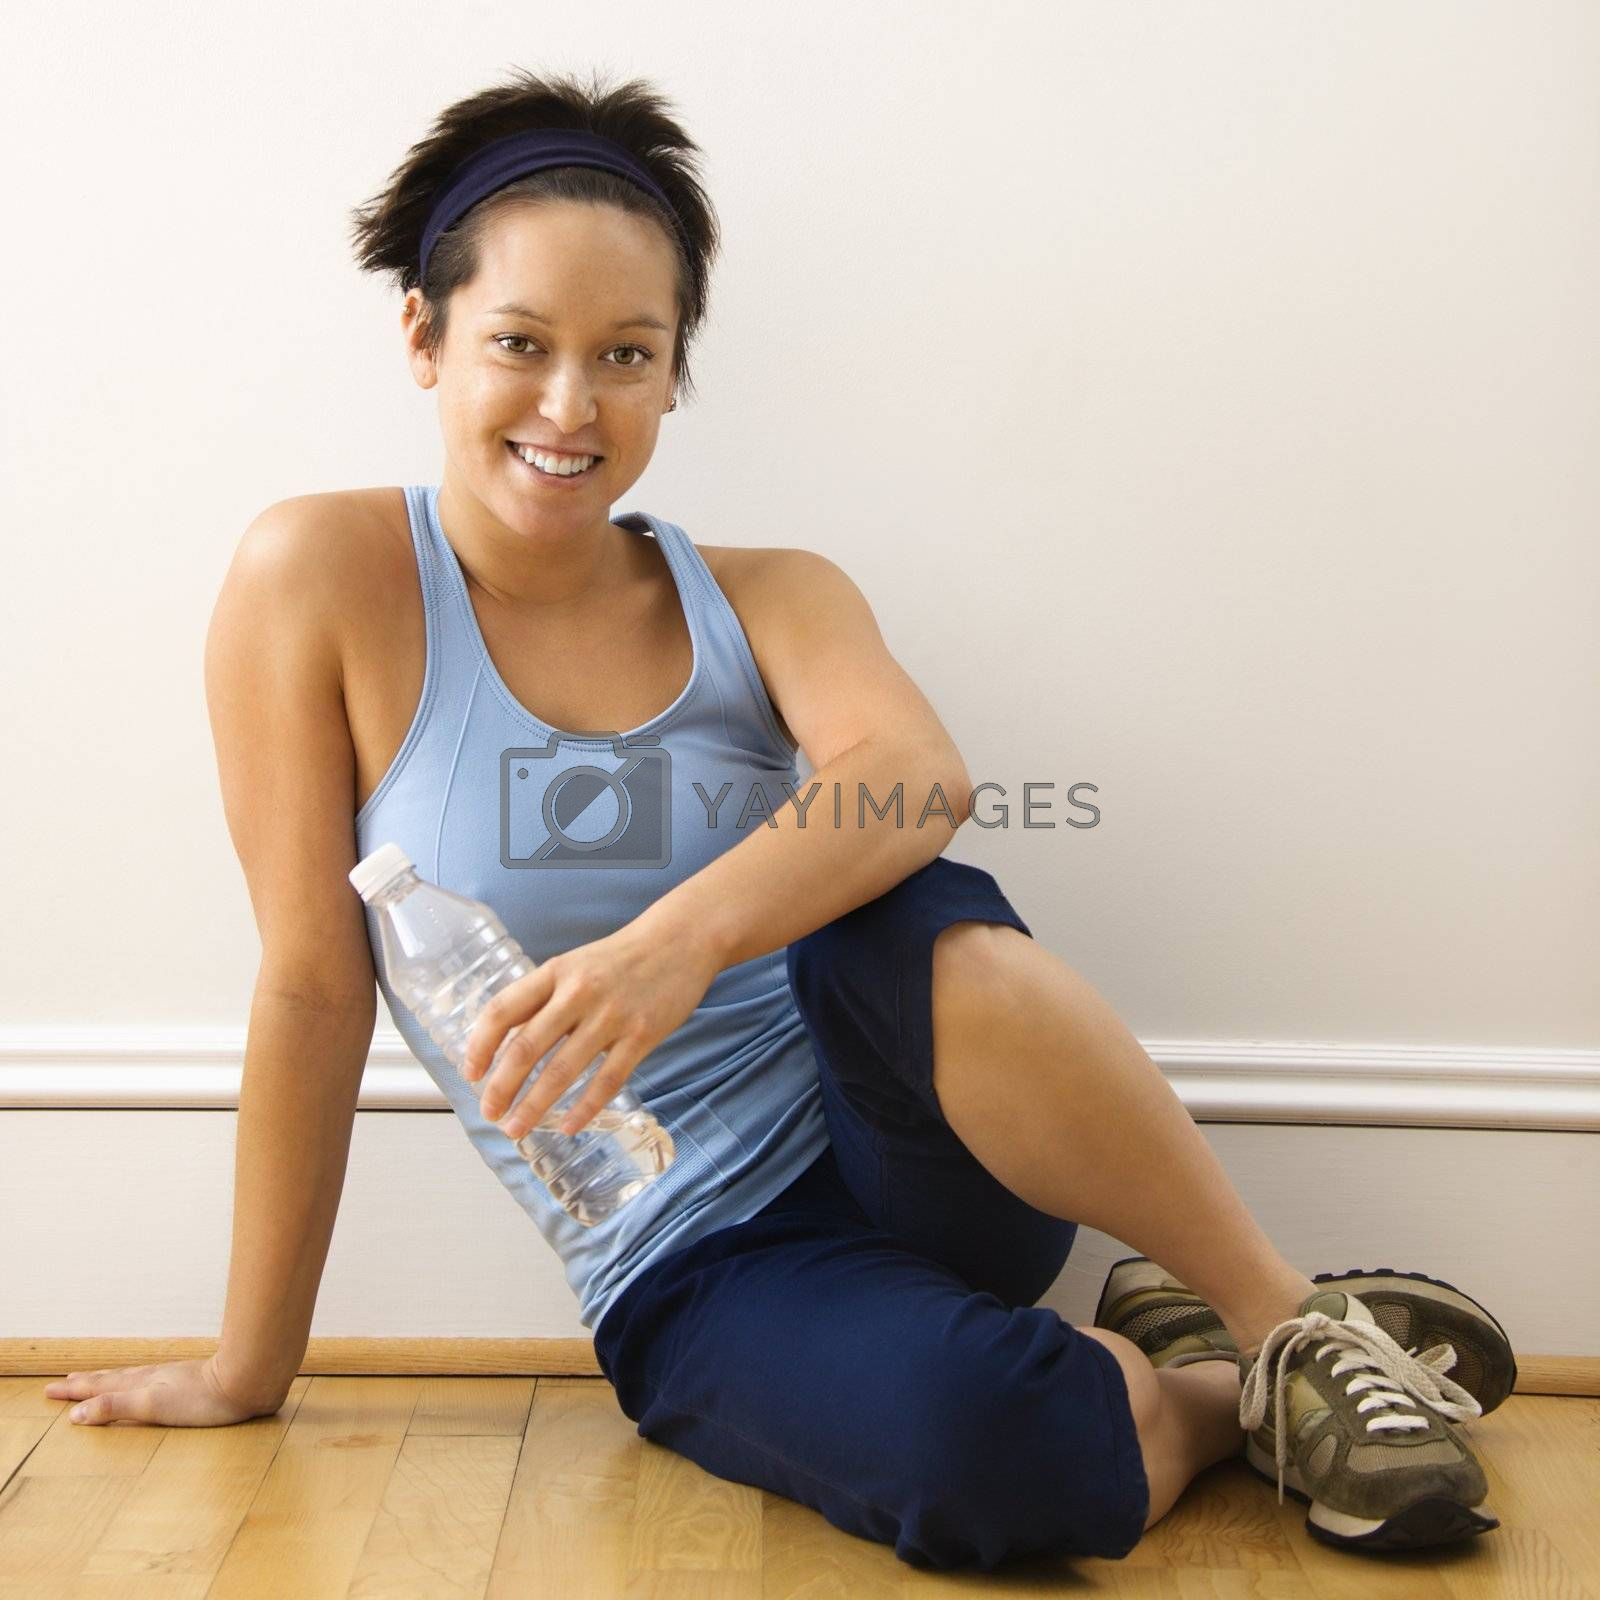 Young woman in fitness outfit sitting on floor with bottled water smiling.